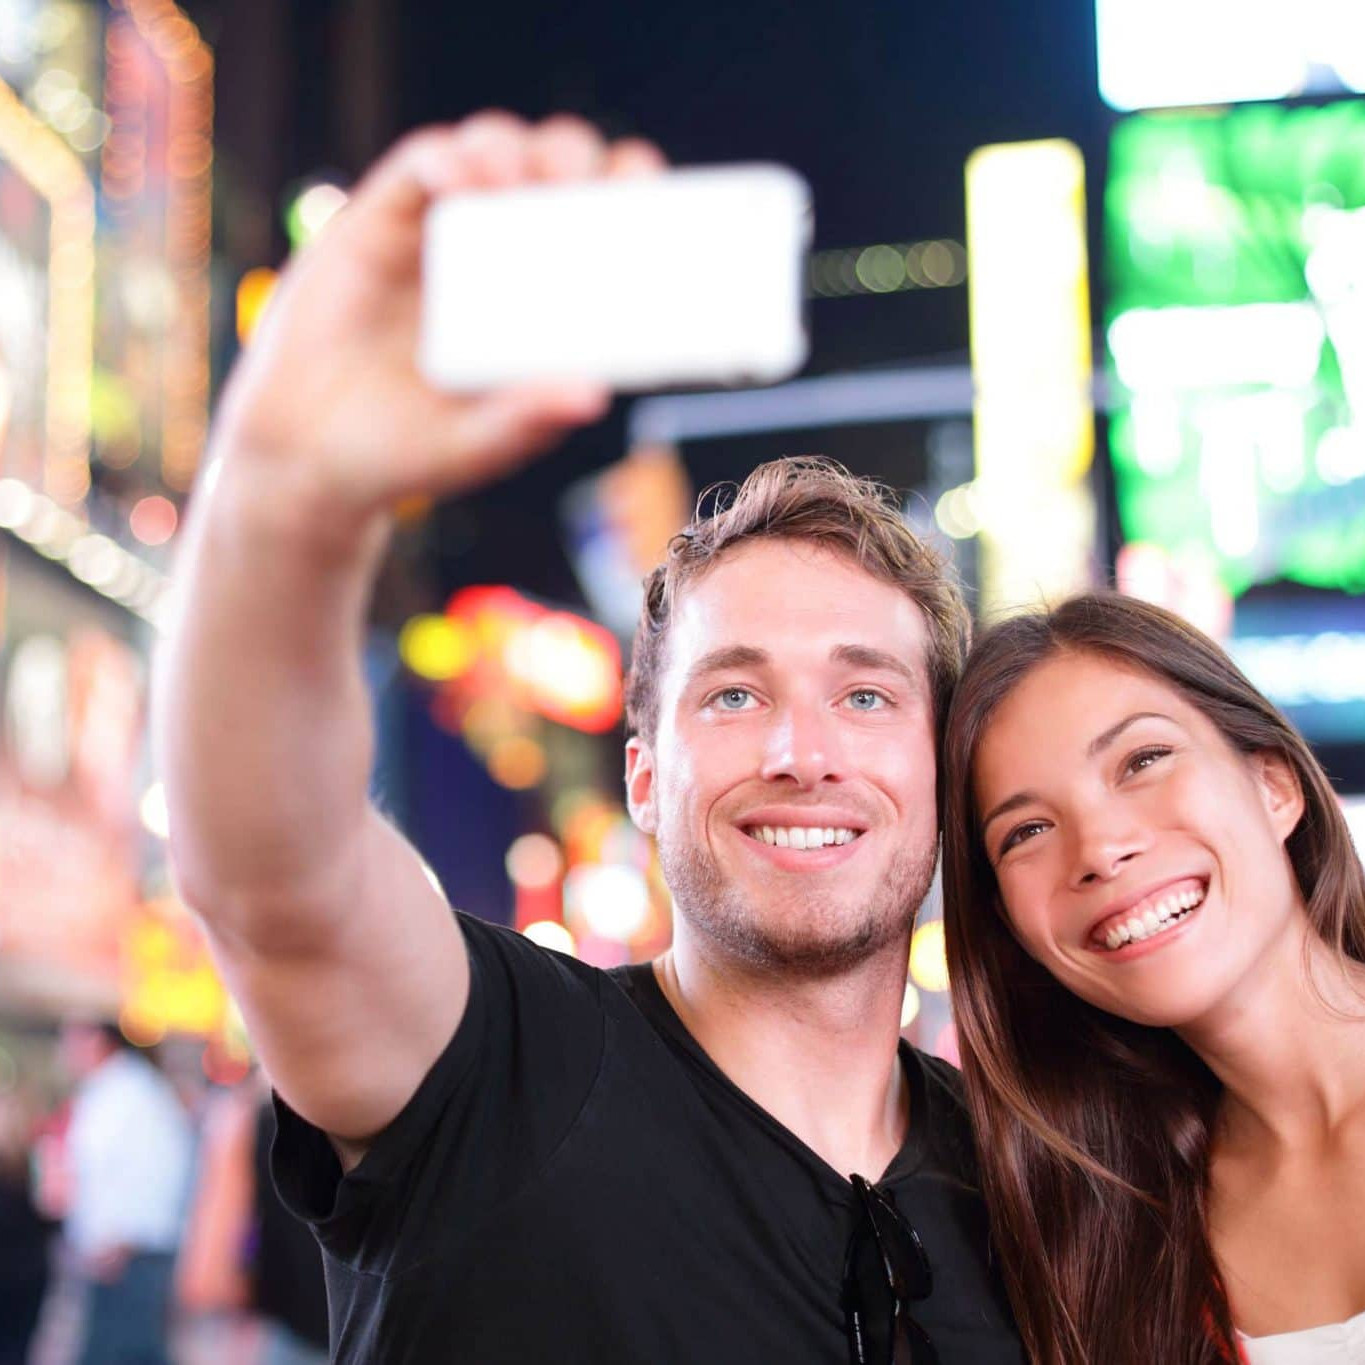 Selfie in Times square north america